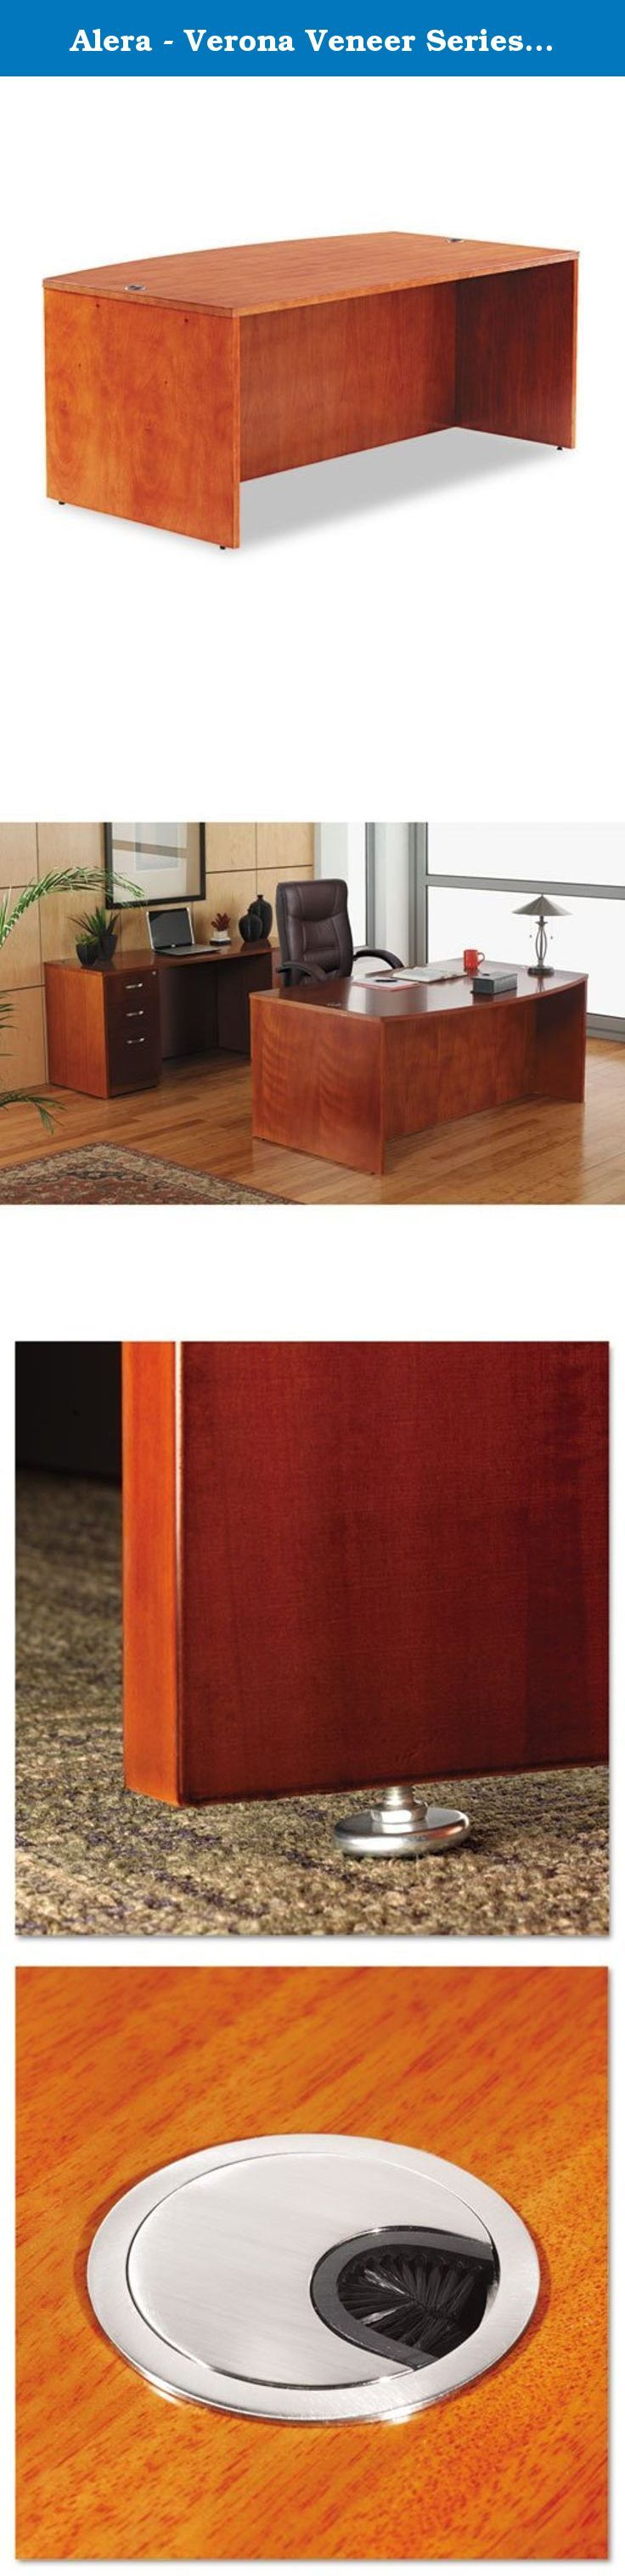 """Alera - Verona Veneer Series Bow Front Desk Shell, 71w x 41-1/2d x 29-1/2h, Cherry RN22-7242CM (DMi EA. Combining veneer elegance with modular format versatility. Premium-grade veneers and solid woods are fine finished, with durability suited to everyday commercial applications. Conference overhang with full-length modesty panel. Solid wood edge with a distinctive reeded profile. Two grommet holes for convenient cable management. Use with Return Shell to create an """"L"""" grouping, or combine..."""